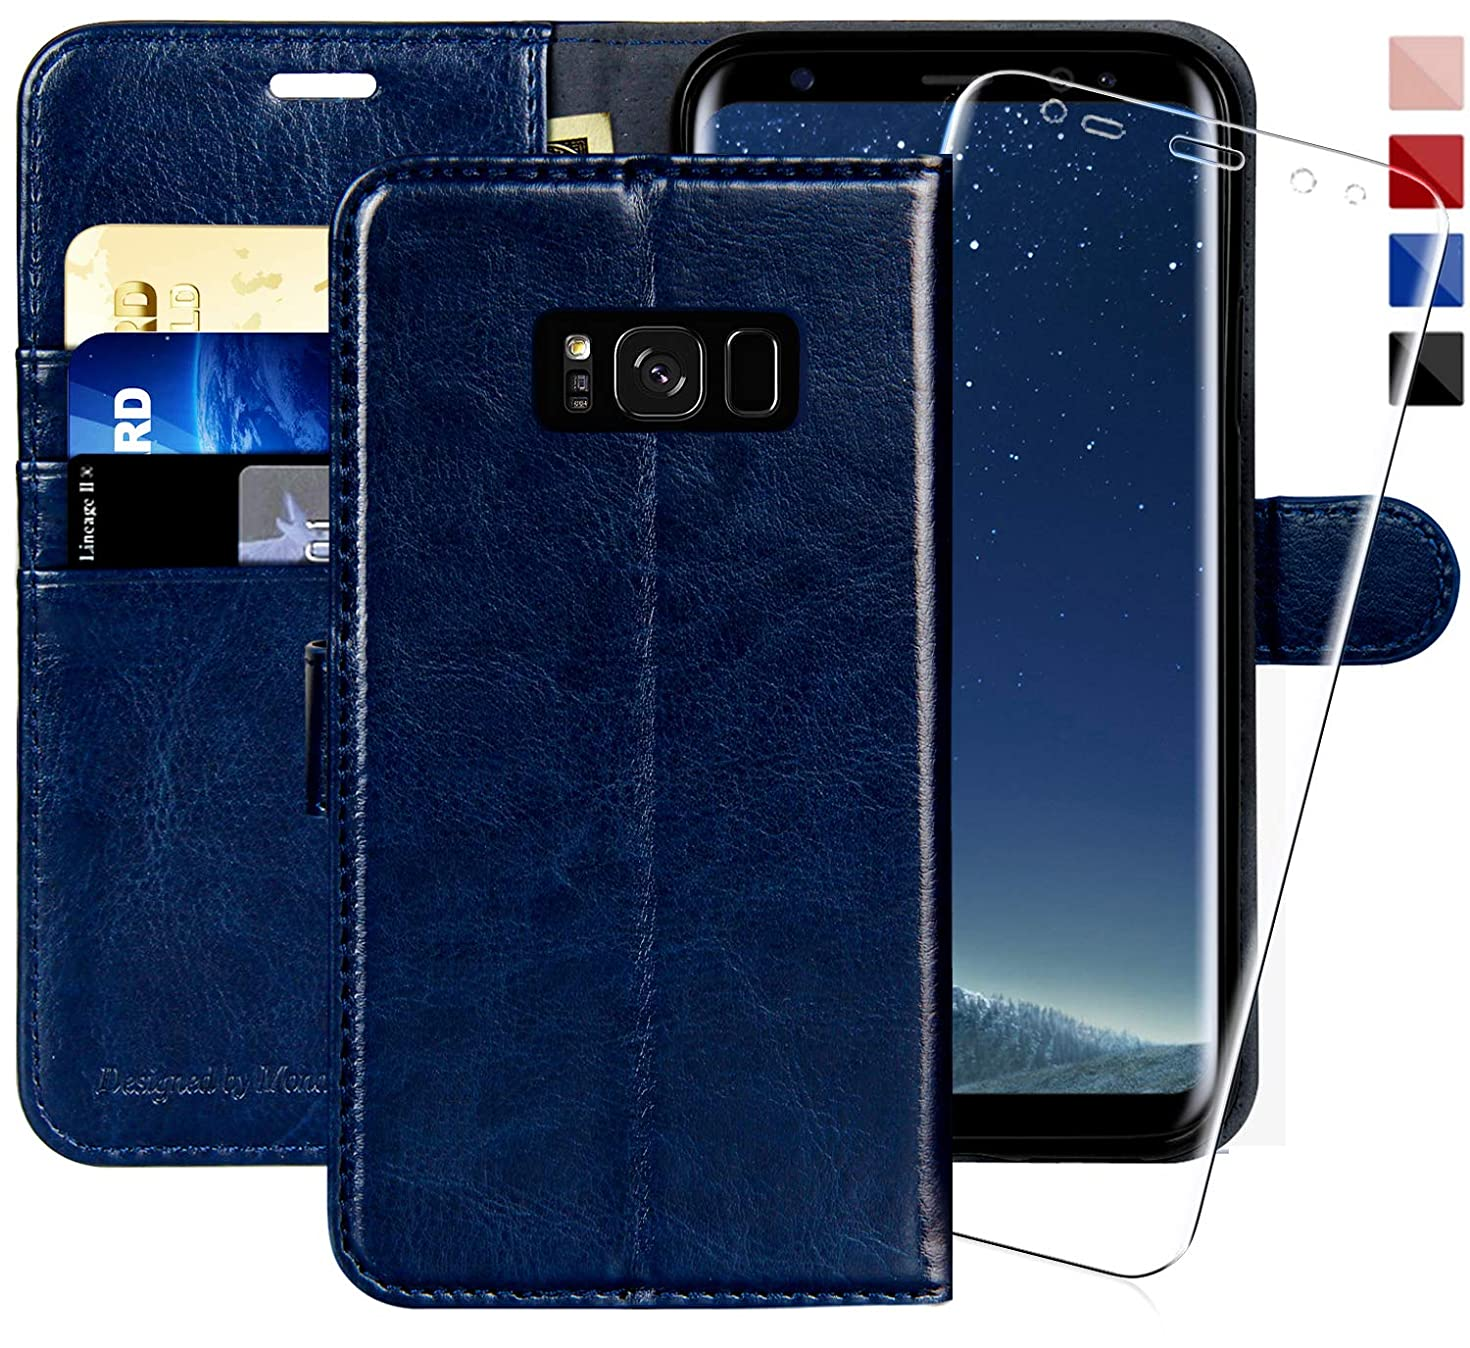 Galaxy S8 Wallet Case, 5.8-inch,MONASAY [Included Screen Protector] Flip Folio Leather Cell Phone Cover with Credit Card Holder for Samsung Galaxy S8